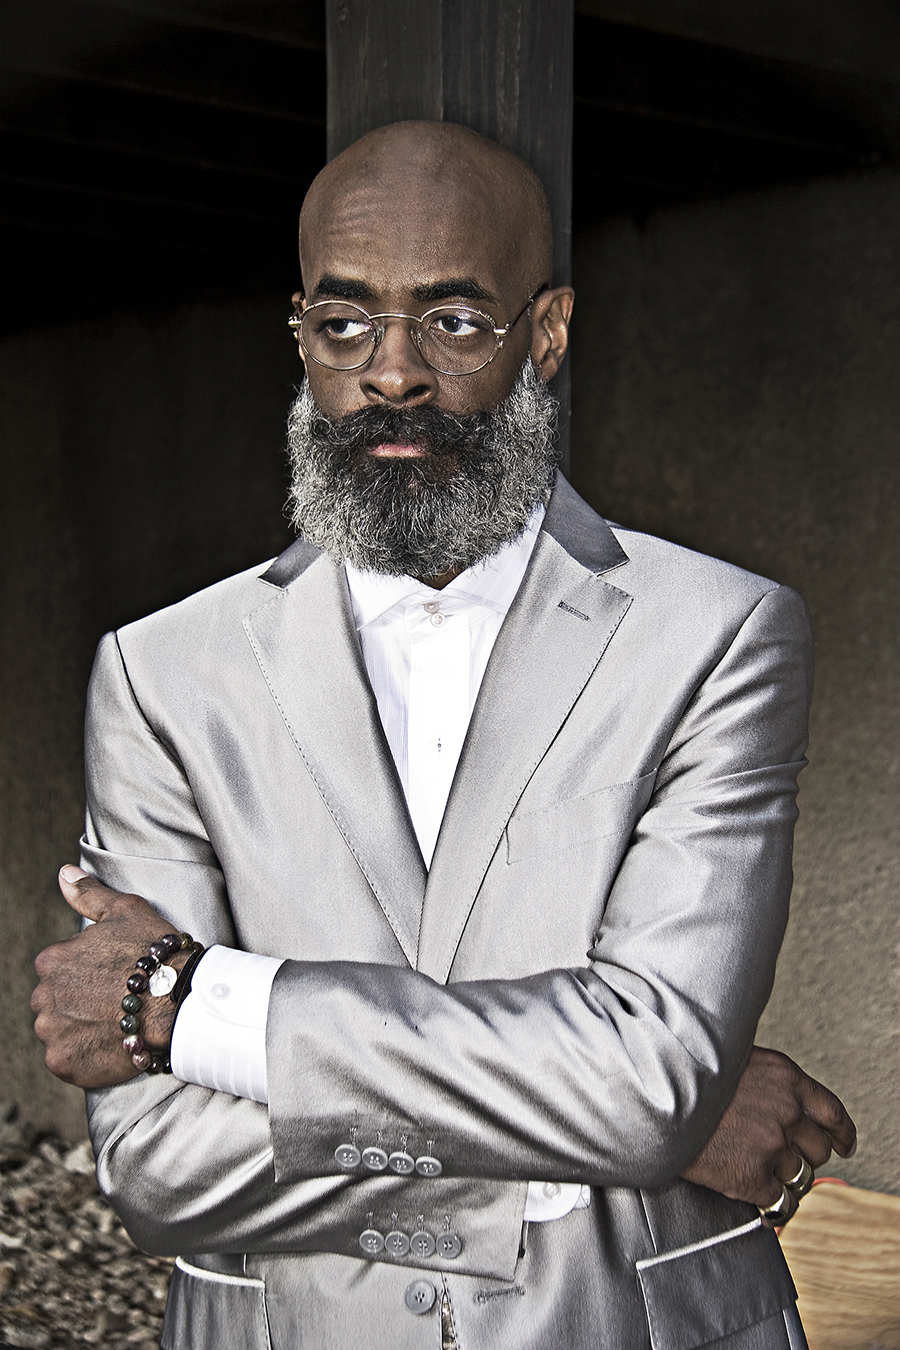 Tony_Ward_Fashion_photography_designer_Kevin_Stewart_Old_School_Shirtmaker_New_York_eyewear_mens_suits_beards_black_men copy